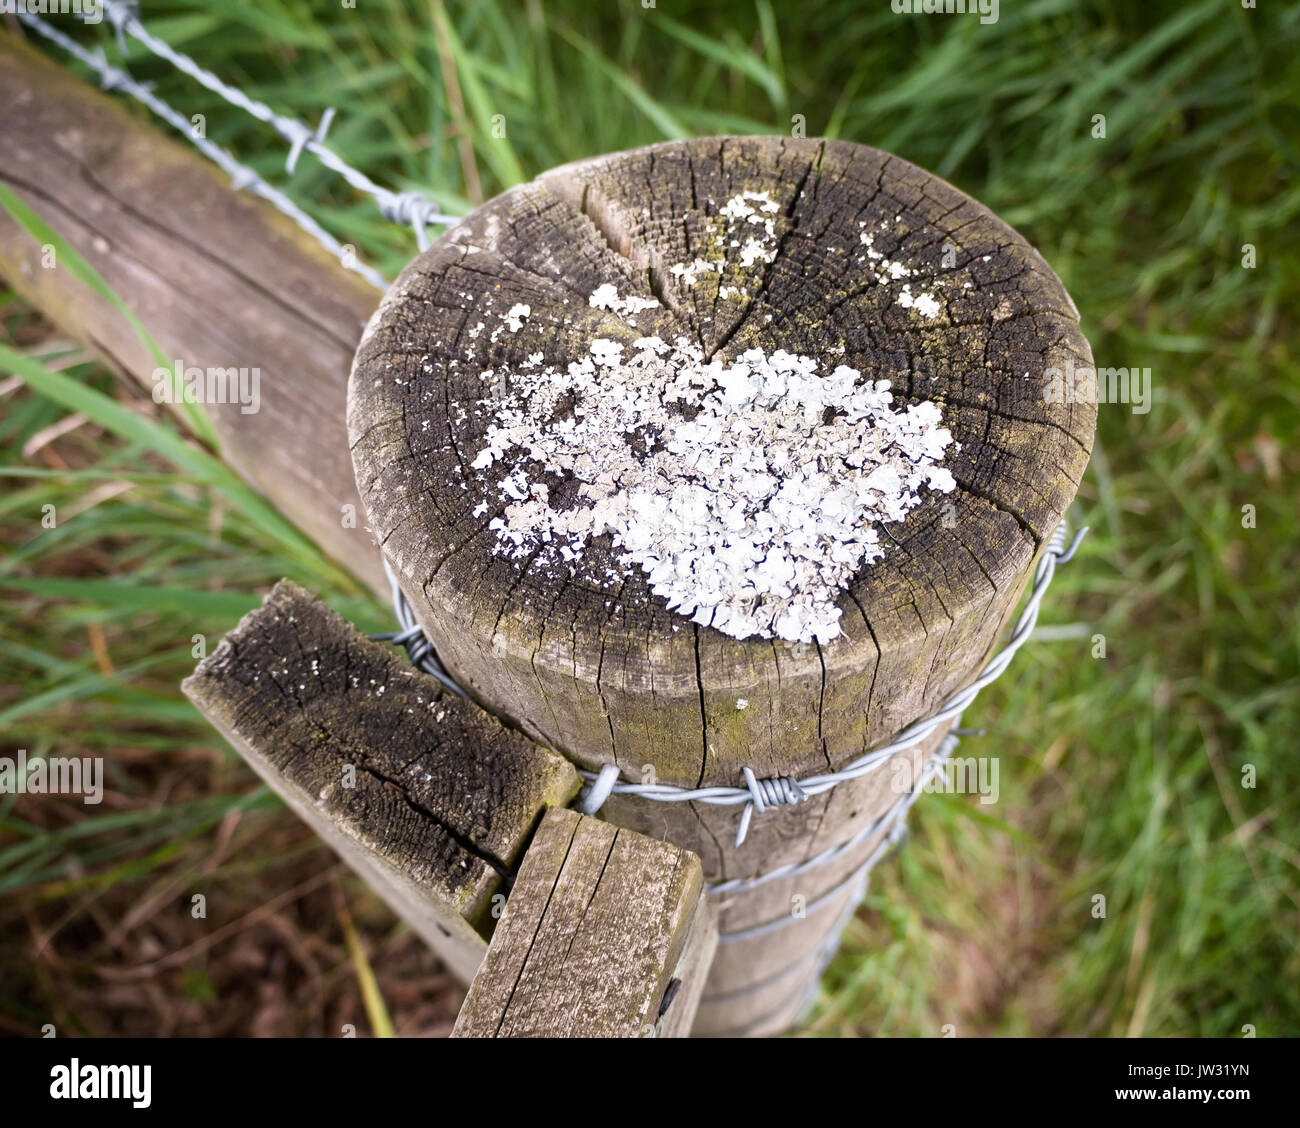 strange white moss fungus growing on a wooden post countryside outside; UK - Stock Image